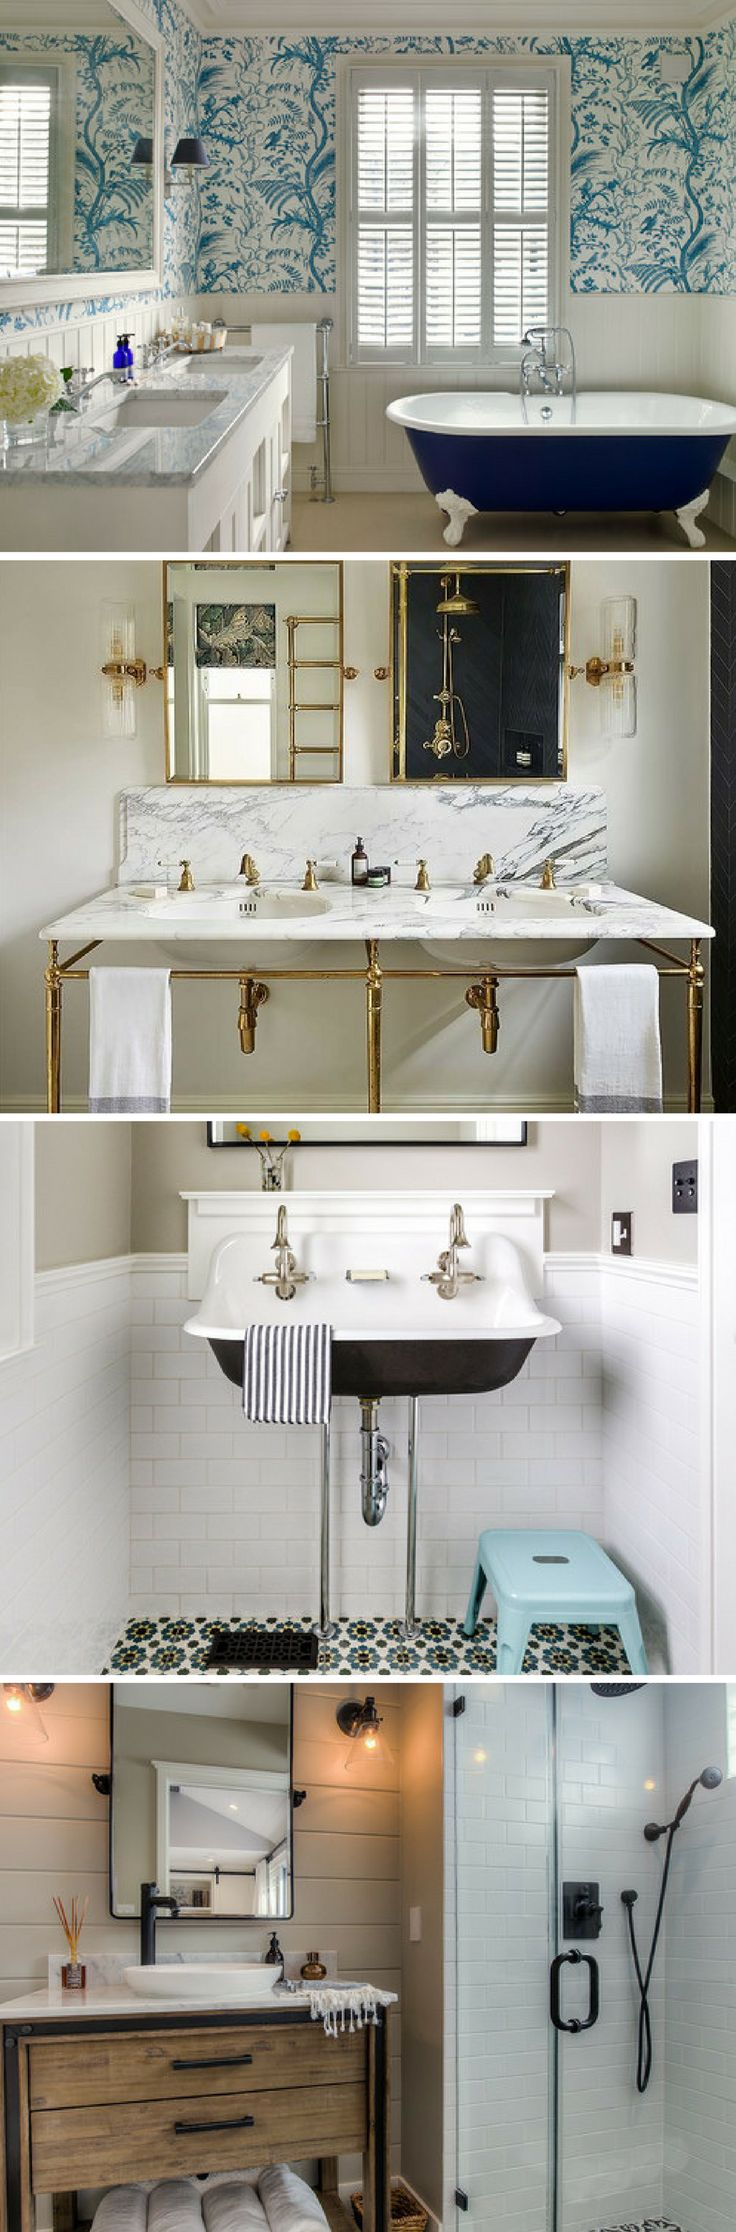 bathroom cabinet online design tool%0A If you are looking for bathroom design ideas to bring your powder room up  to date  these are the design trends to follow  Everything from funky  wallpaper to